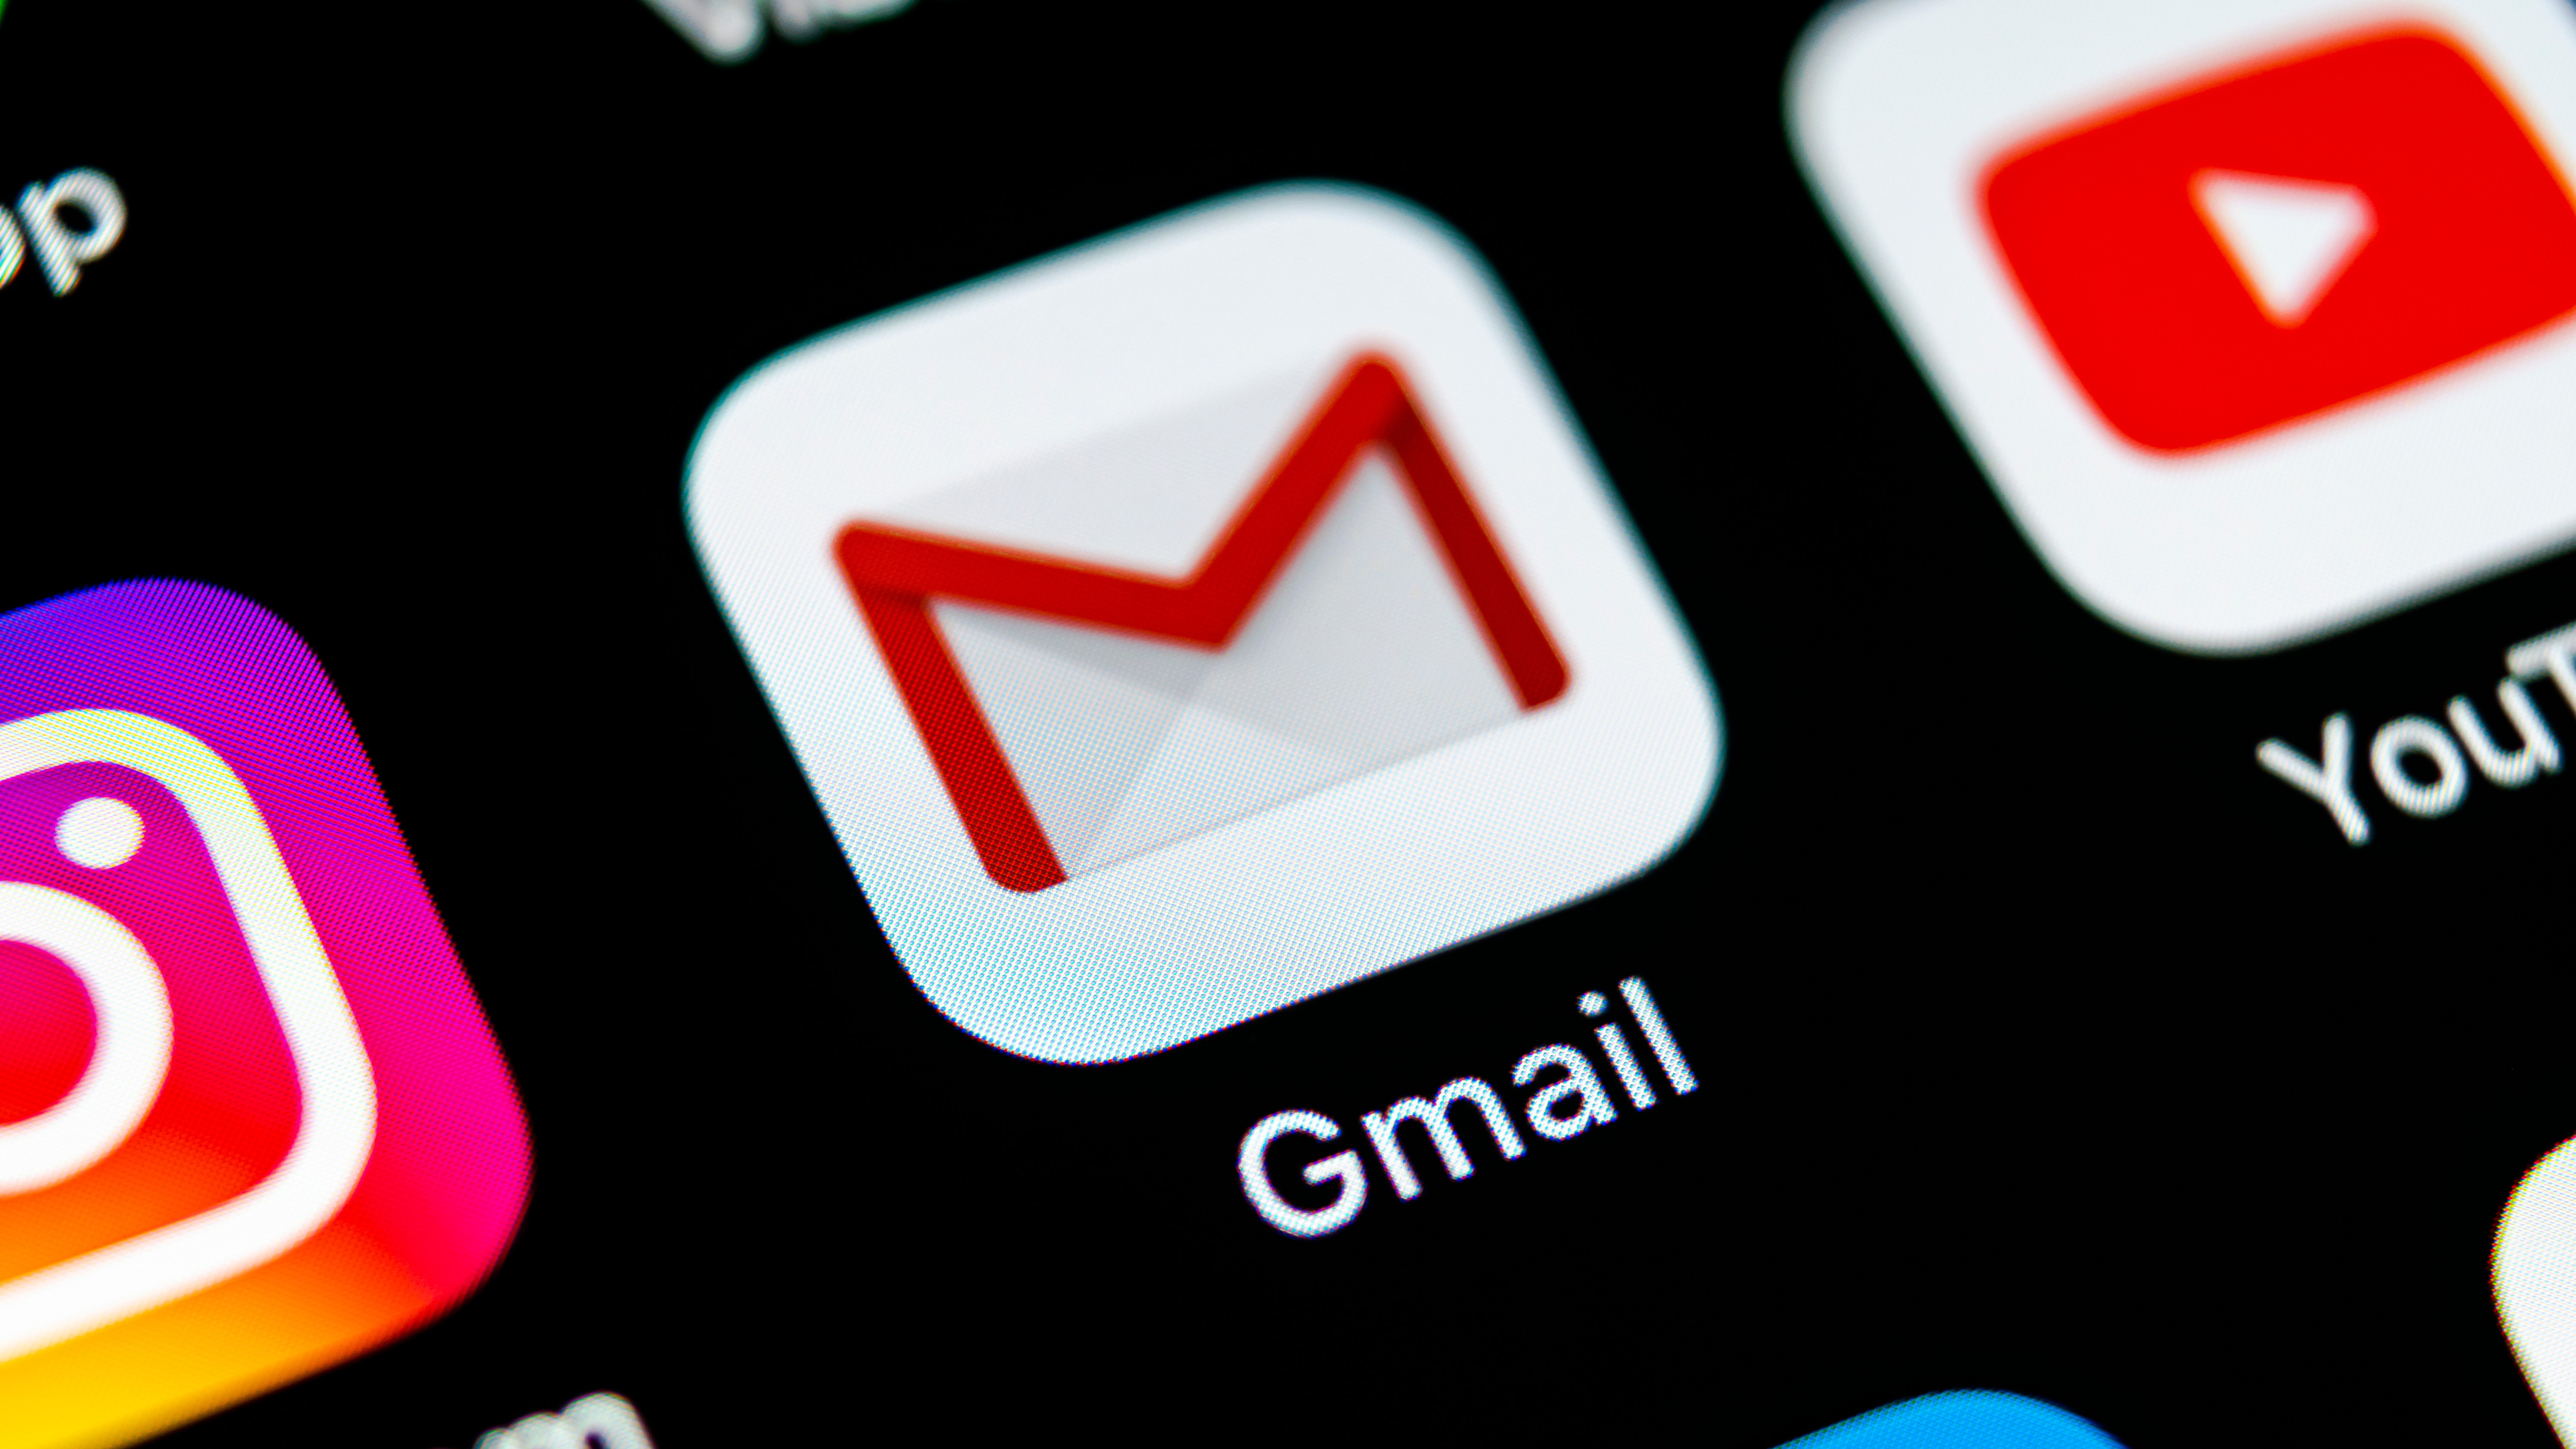 Lost the option to empty spam and trash in the Gmail app? Here's how to get it back